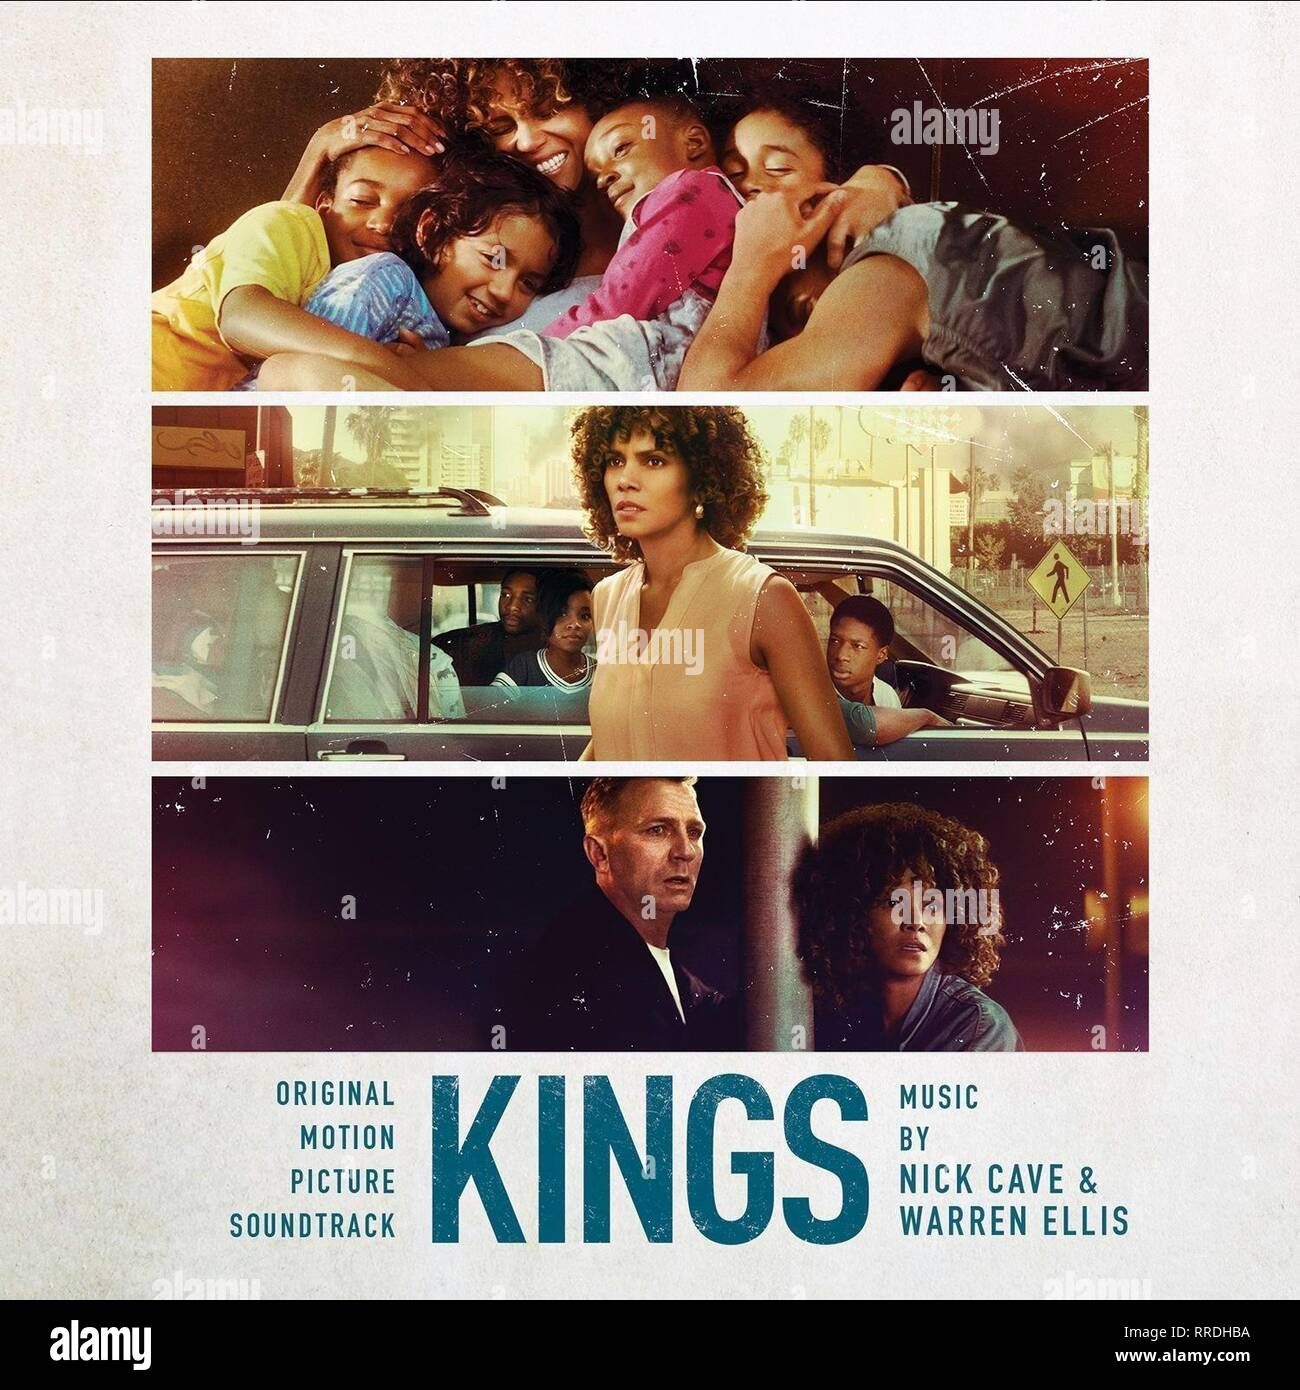 KINGS, MOVIE POSTER, 2017 - Stock Image